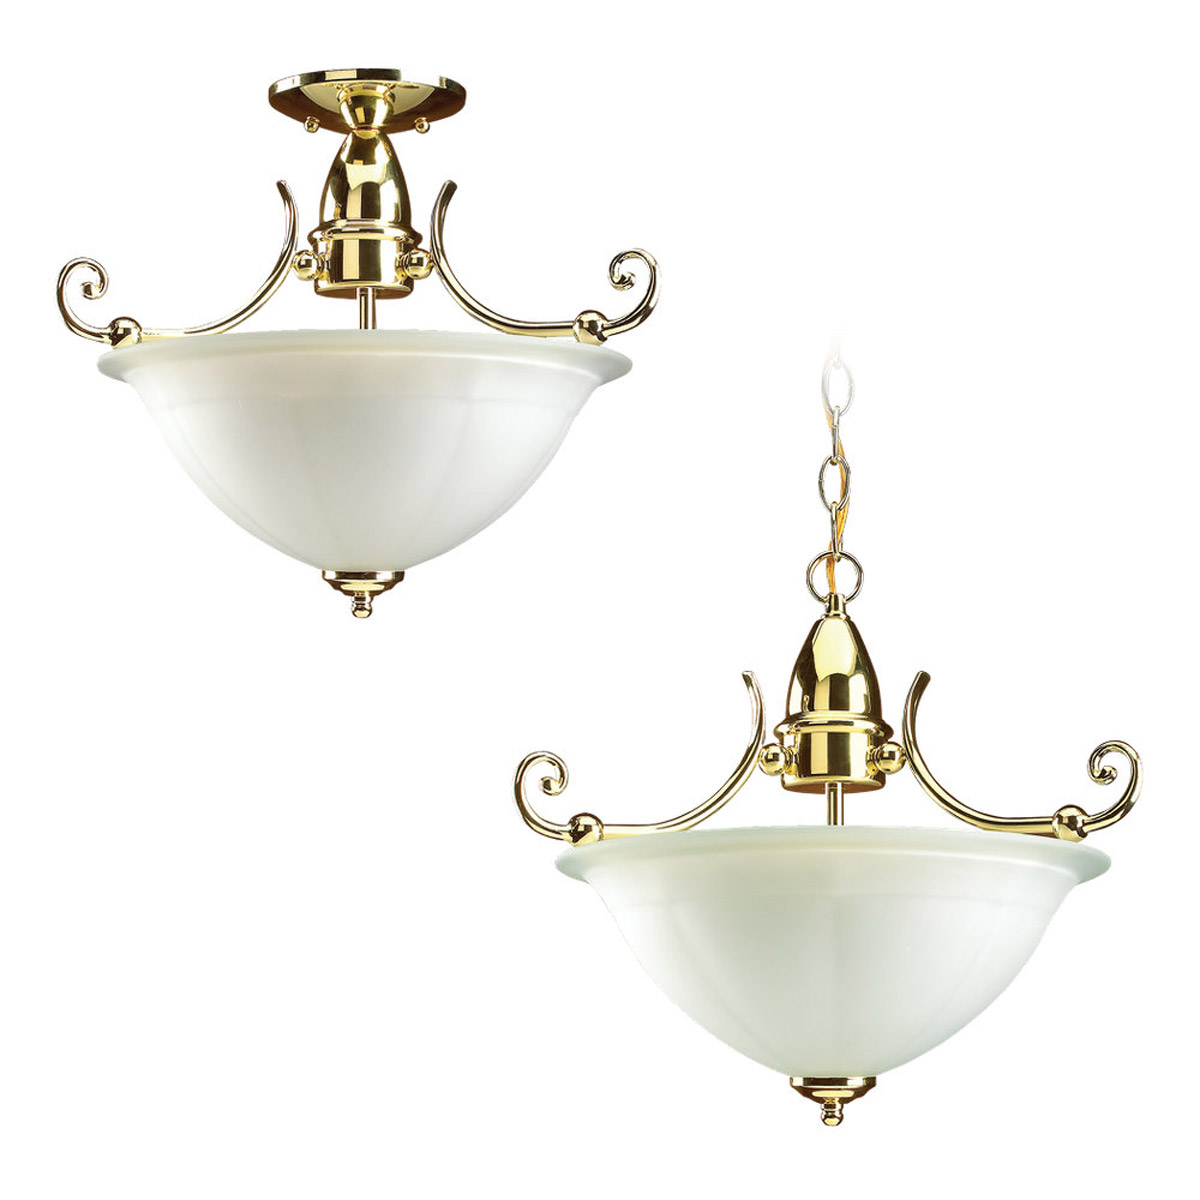 Sea Gull Lighting Canterbury 2 Light Pendant Convertible in Polished Brass 51050-02